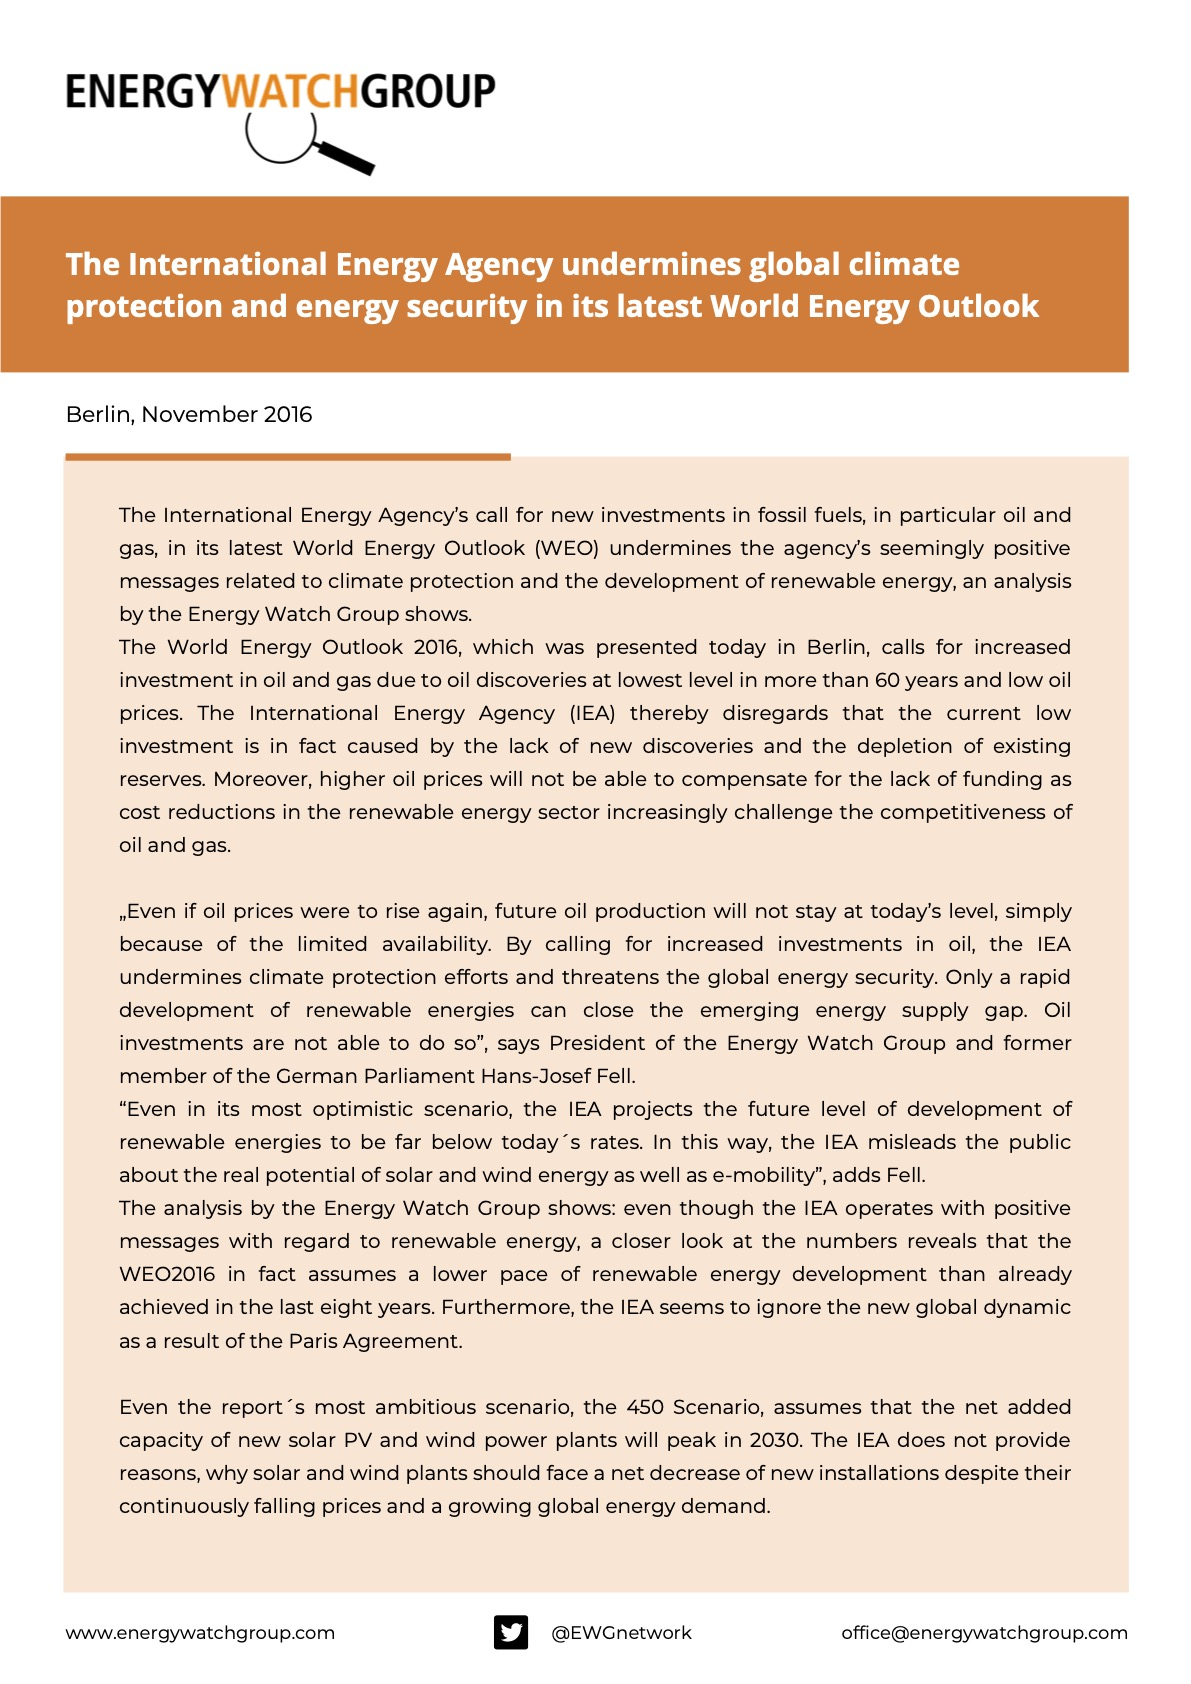 The International Energy Agency undermines global climate protection and energy security in its latest World Energy Outlook Kopie